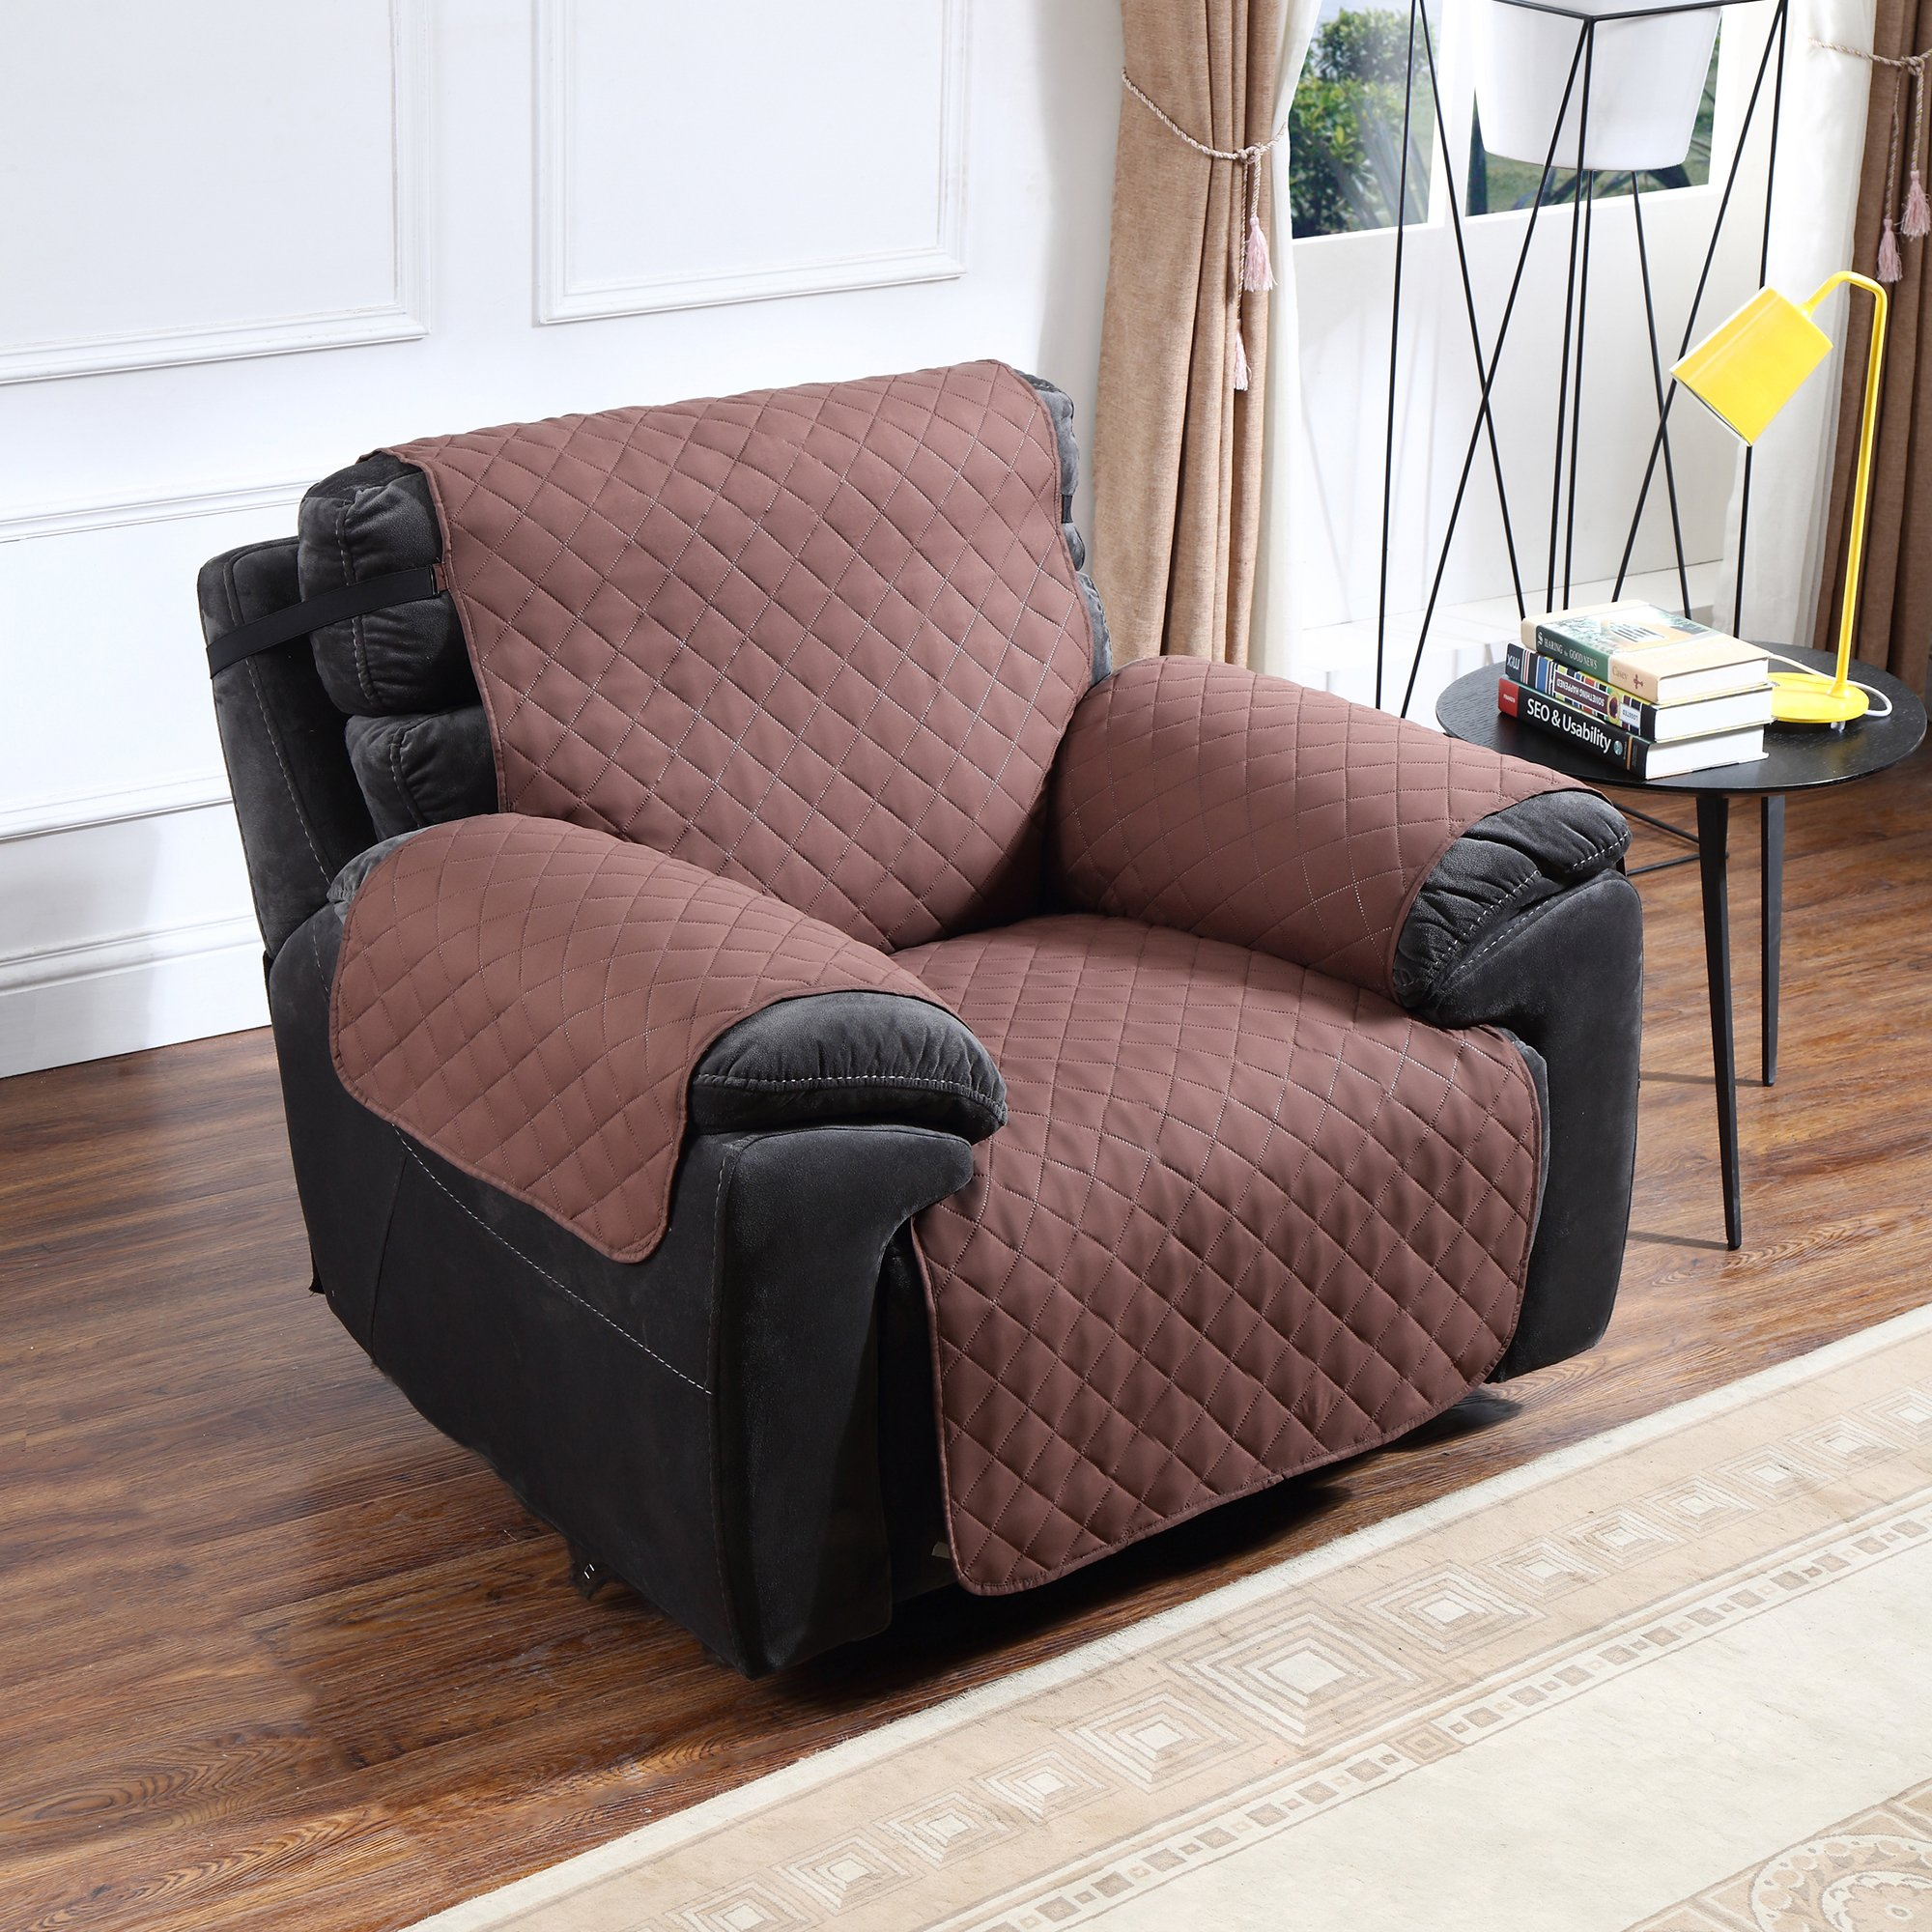 Argstar Reversible Recliner Cover Chair Protector Slipcover Easy Clean Chocolate/Natural by Argstar